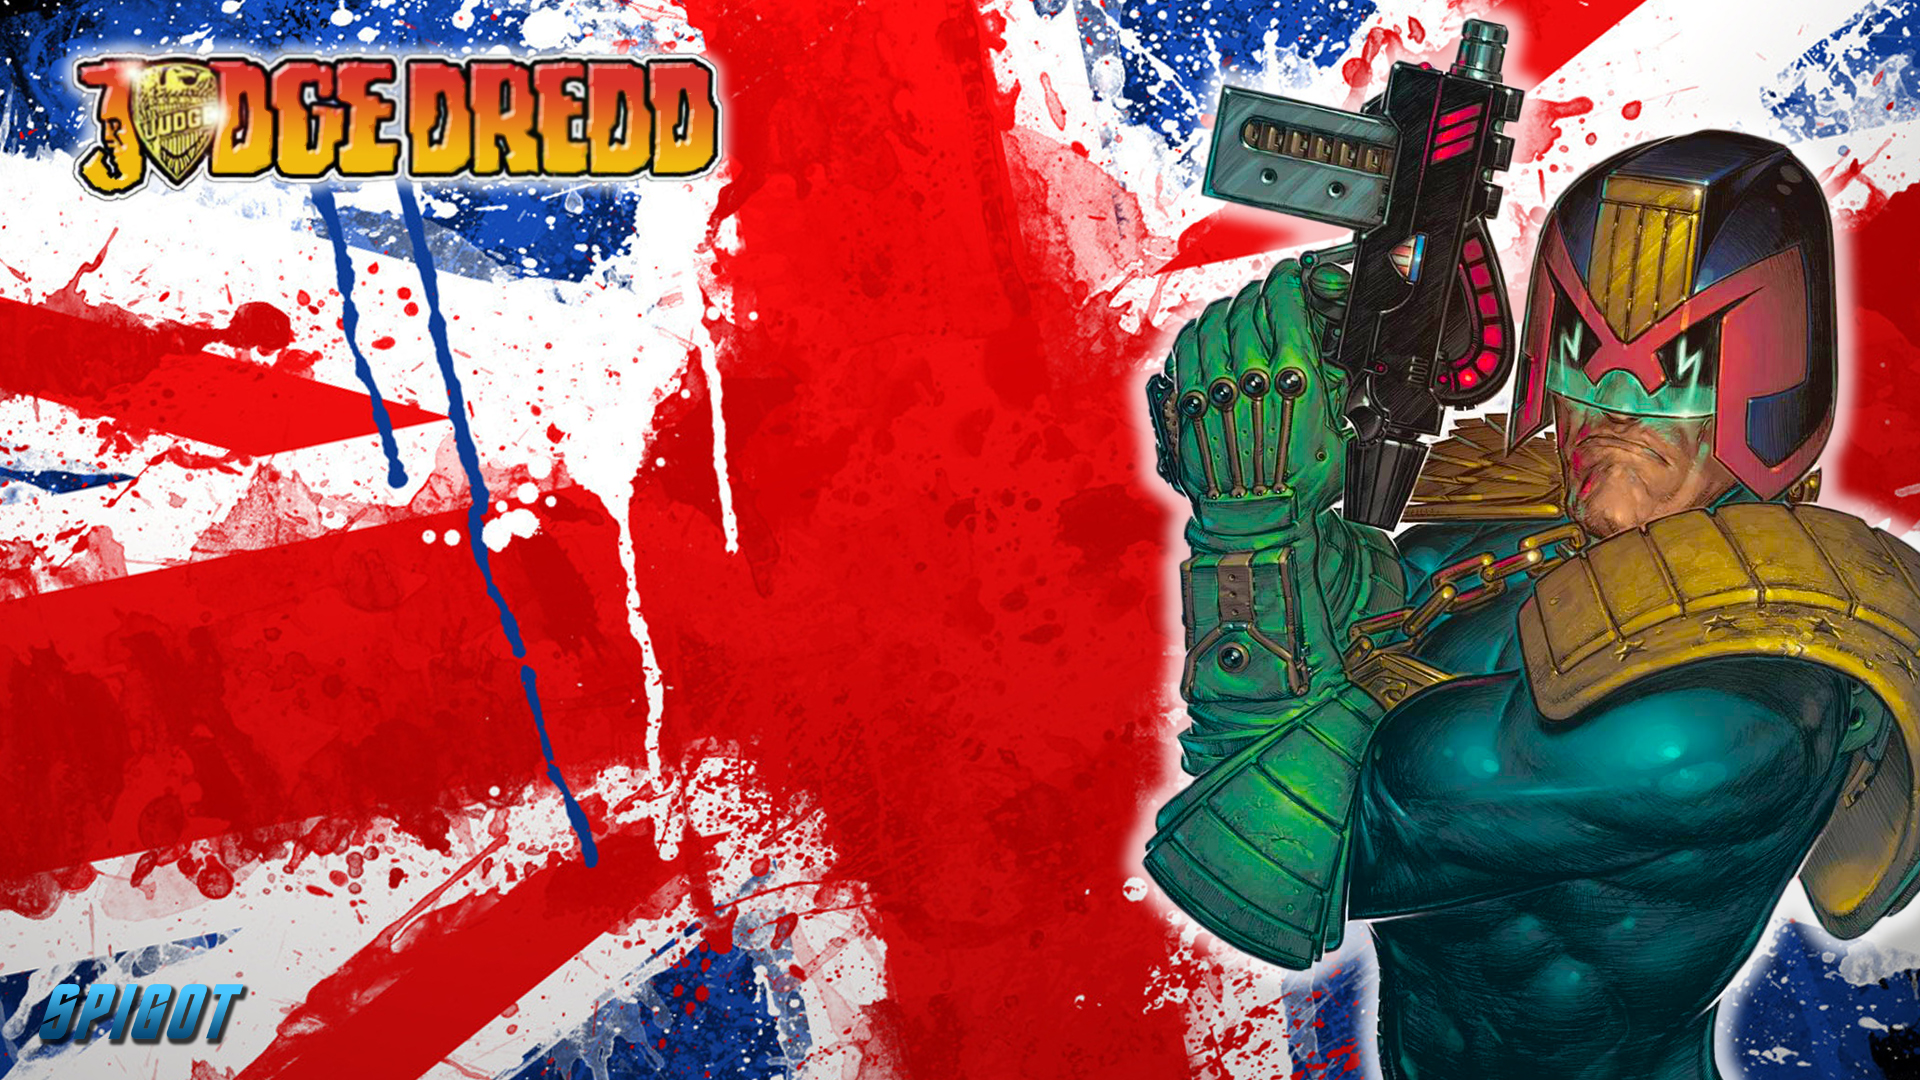 Bewseychip: Judge Dredd And The Union Jack Wallpaper